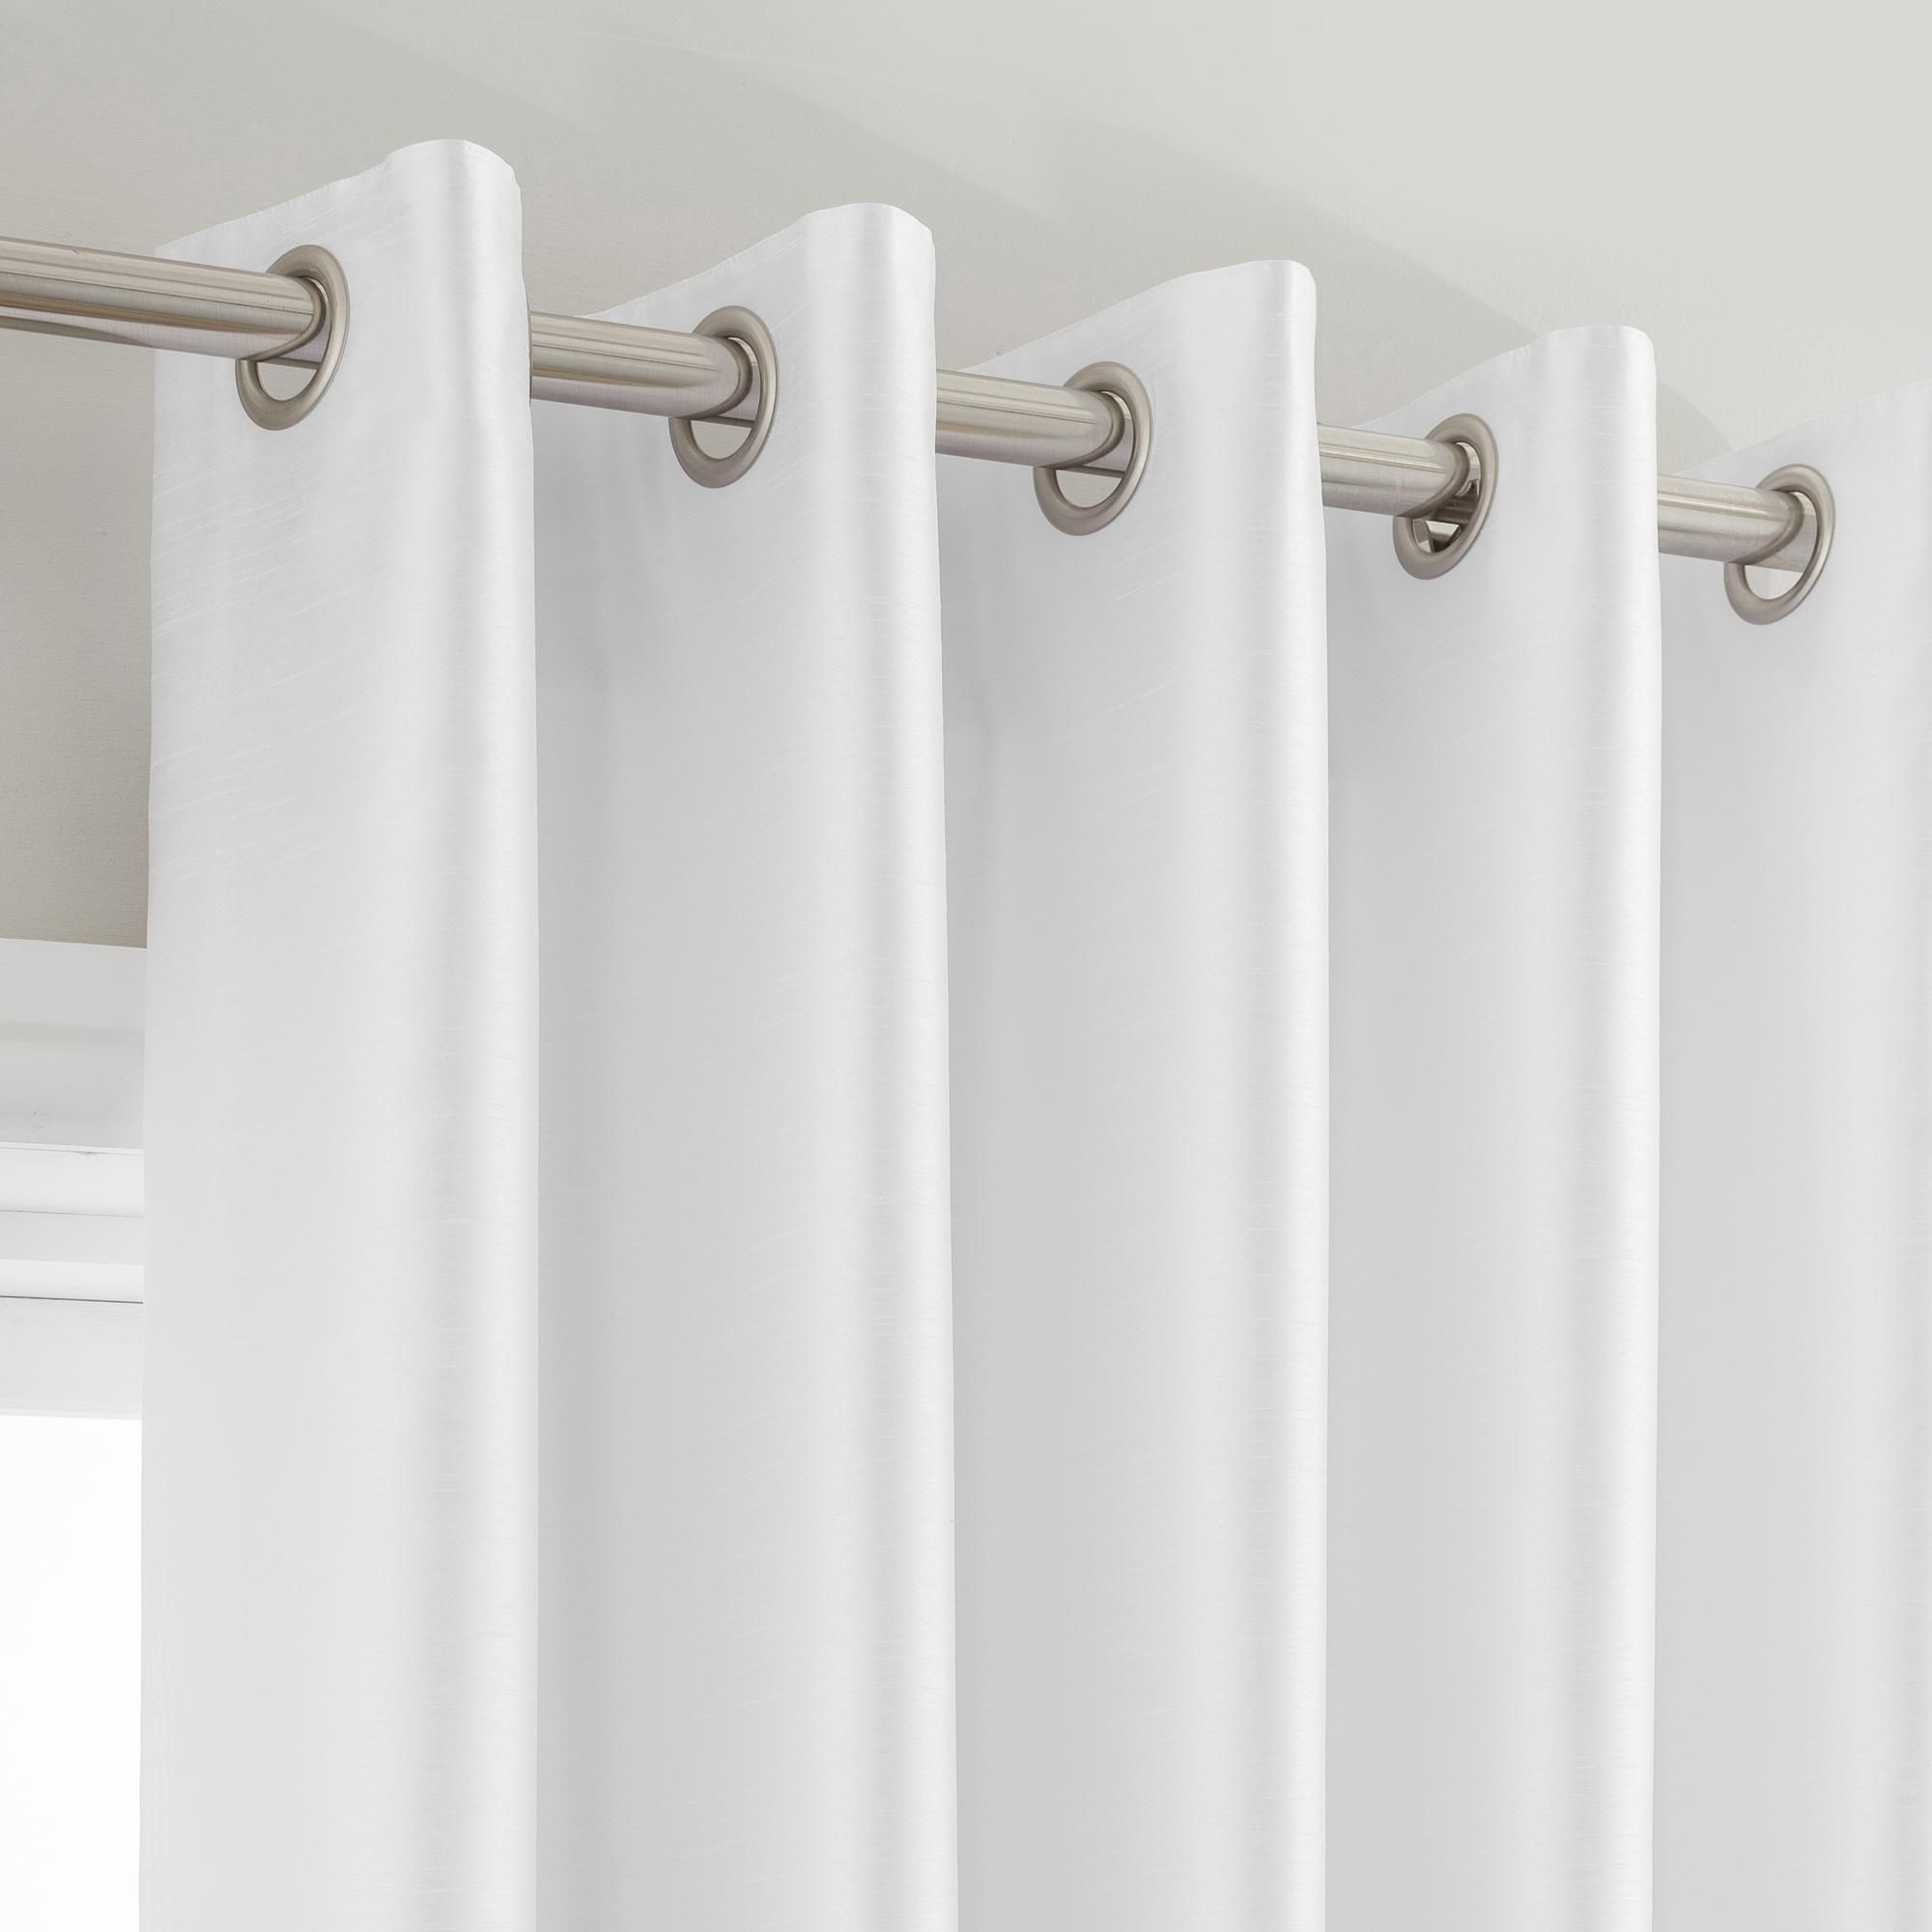 Montana White Lined Eyelet Curtains White Eyelet Curtains Curtains Types Of Curtains